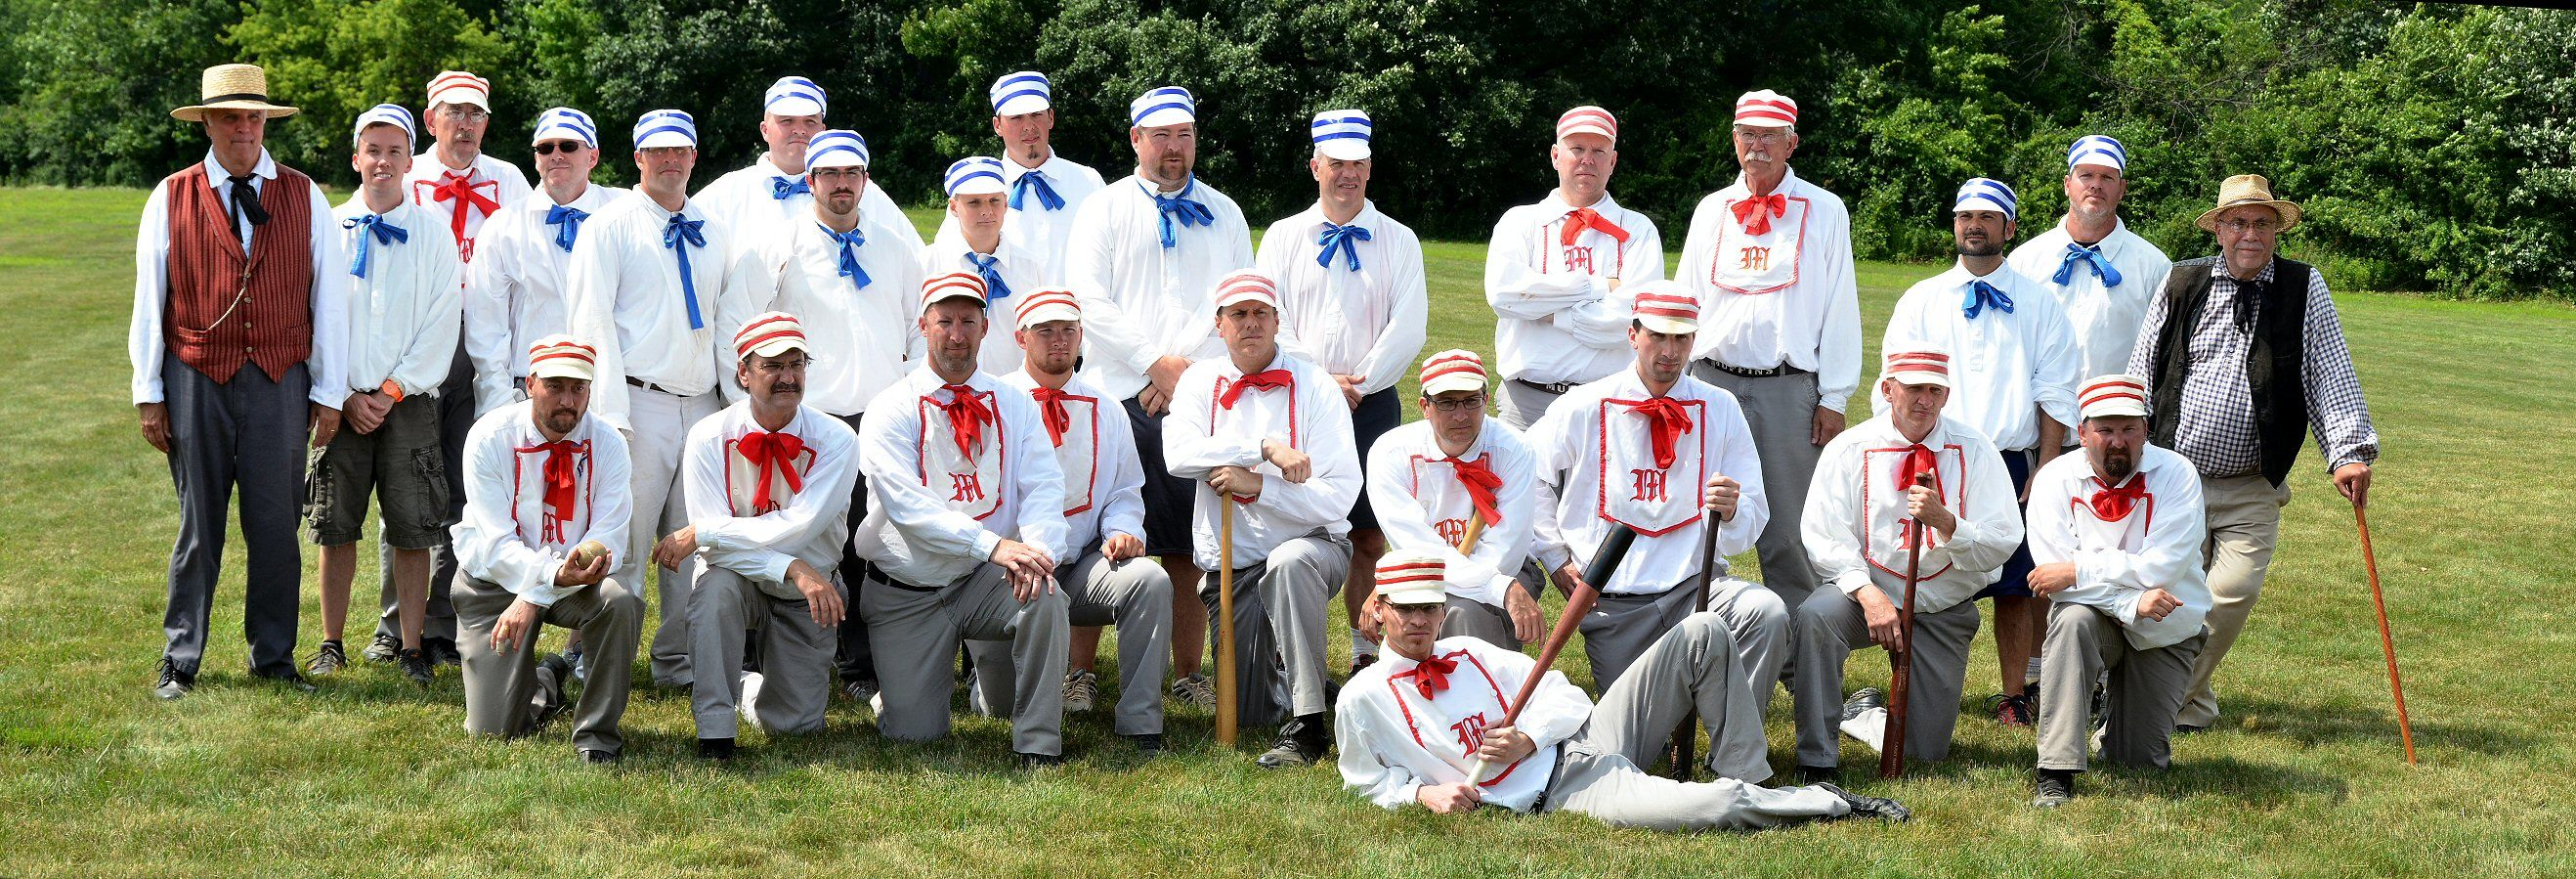 The Ohio Village Muffins Vintage Baseball Team Who Play On The Lawn Of Homecare Matters Each Spring In Cooperation With Vintage Baseball Baseball Team Vintage